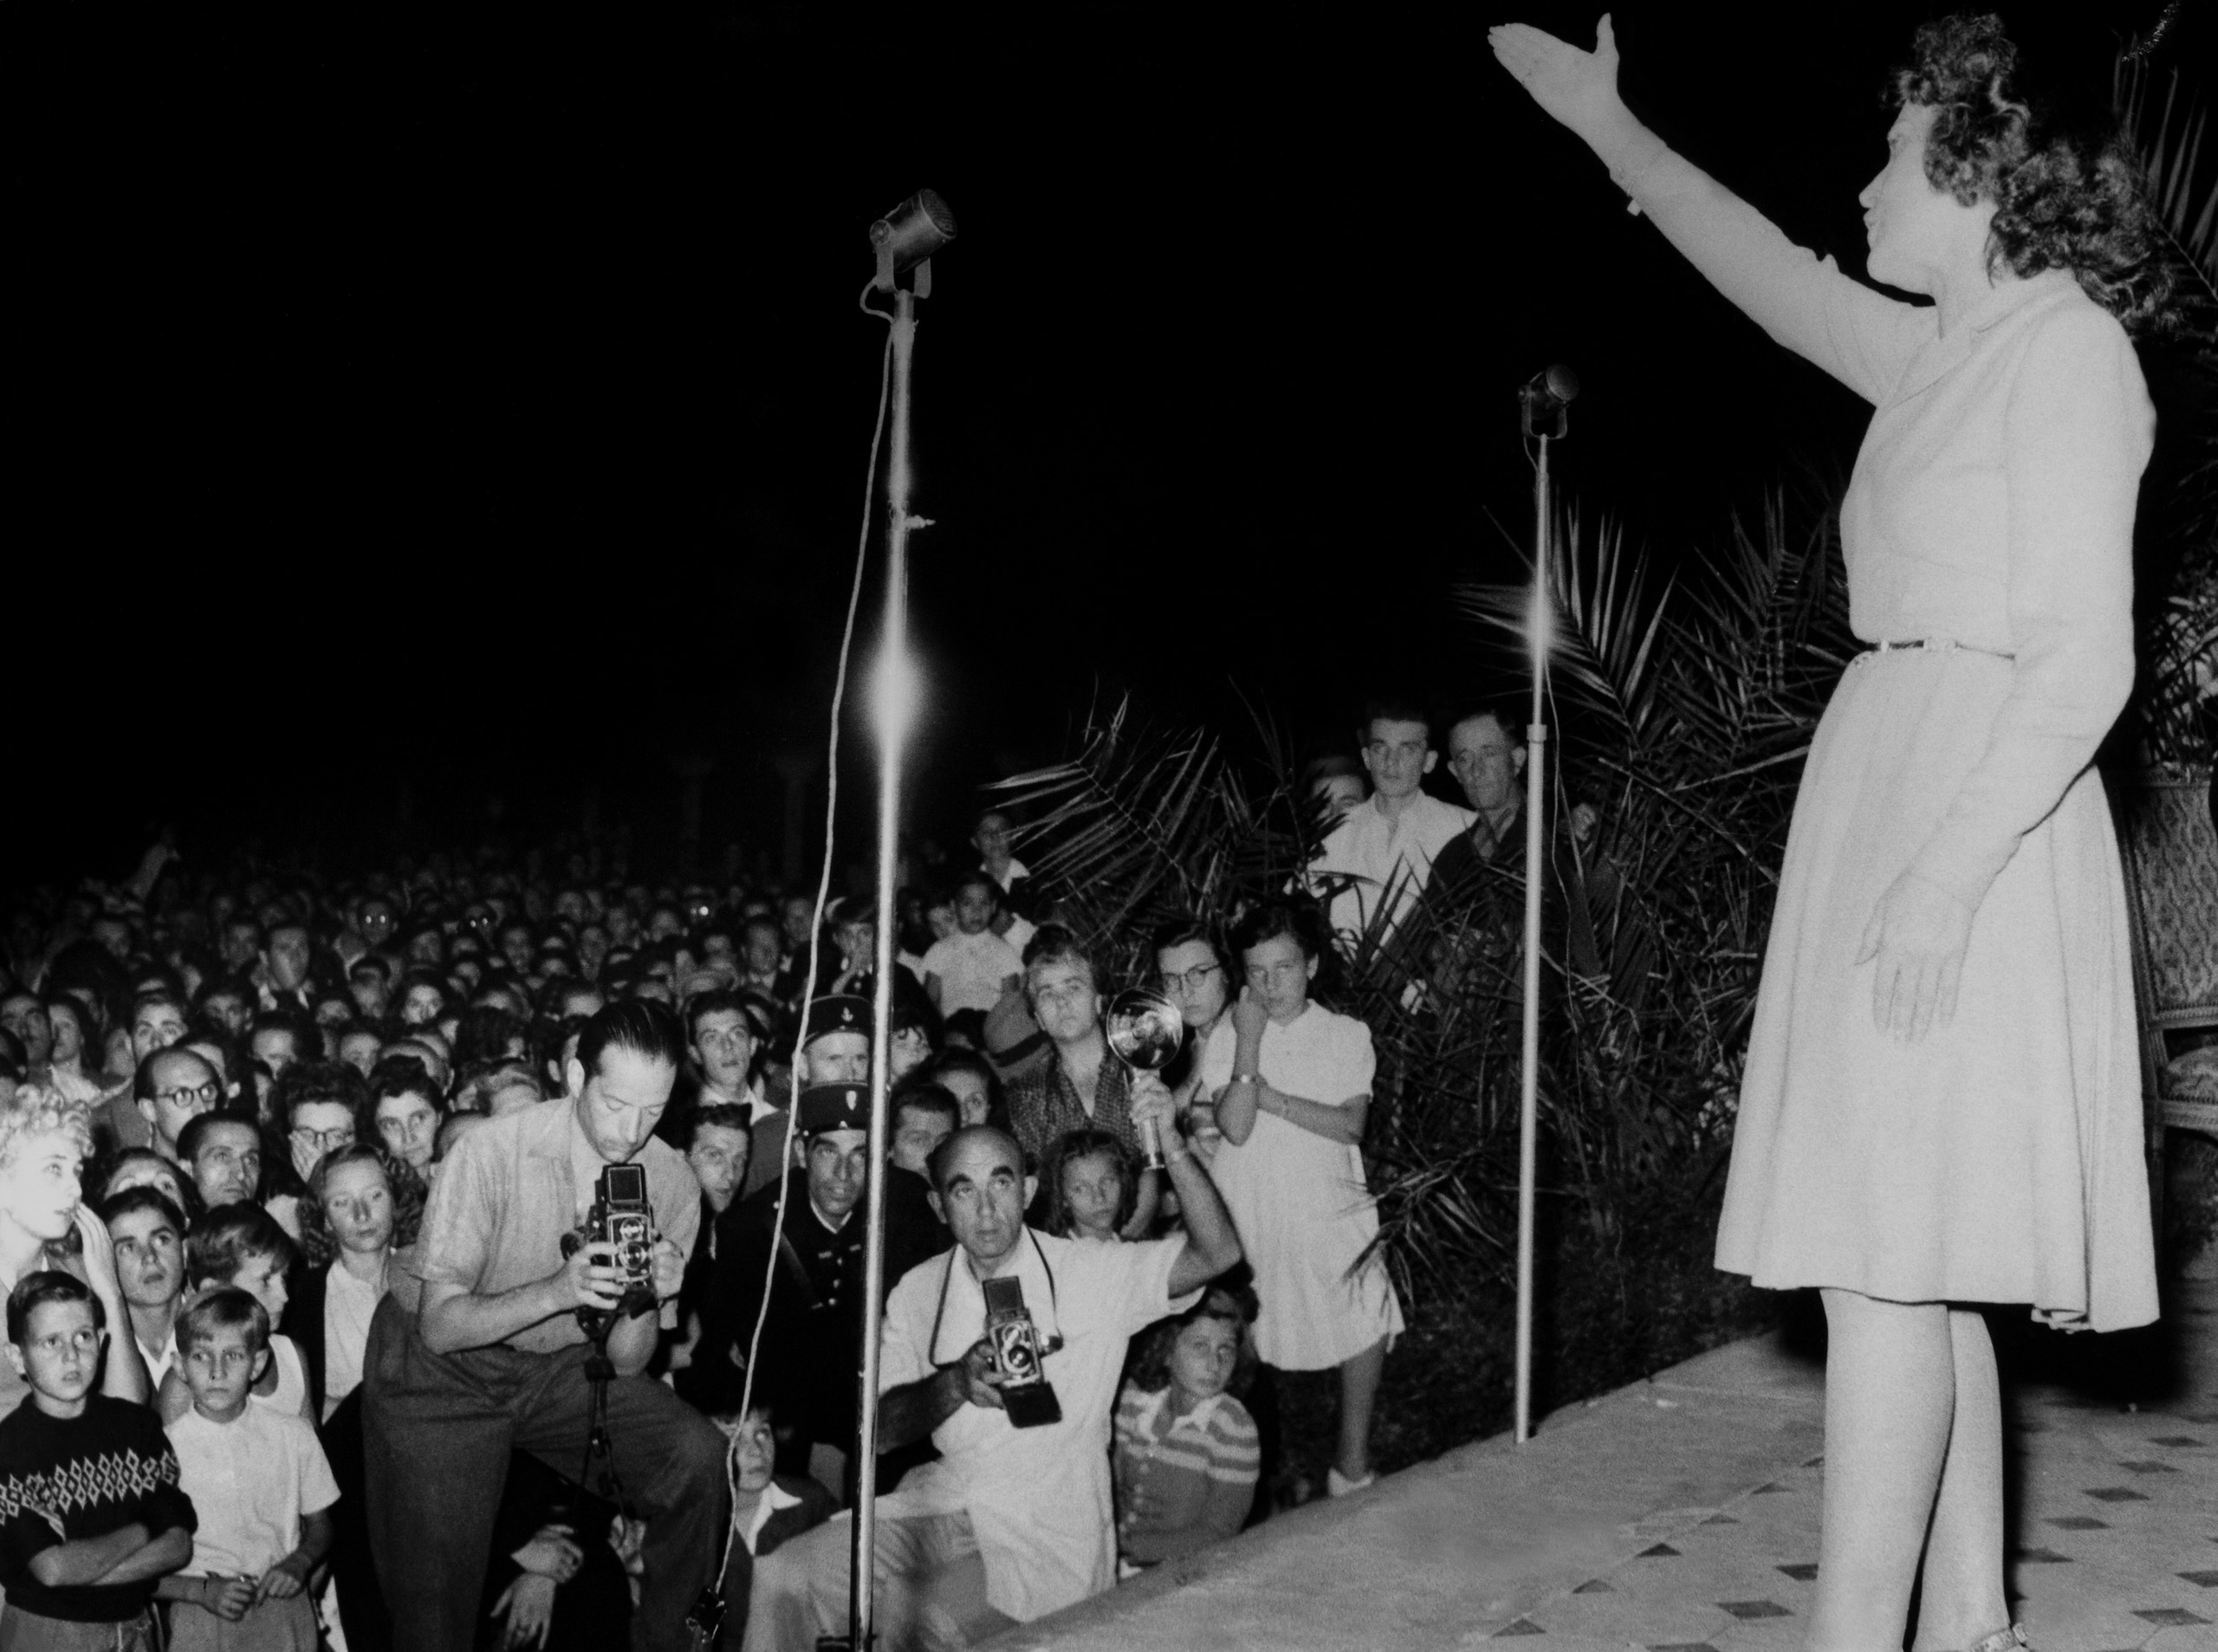 Edith Piaf on the Carlon Hotel's Terrace at the first Cannes Film Festival in Cannes, France In 1946.